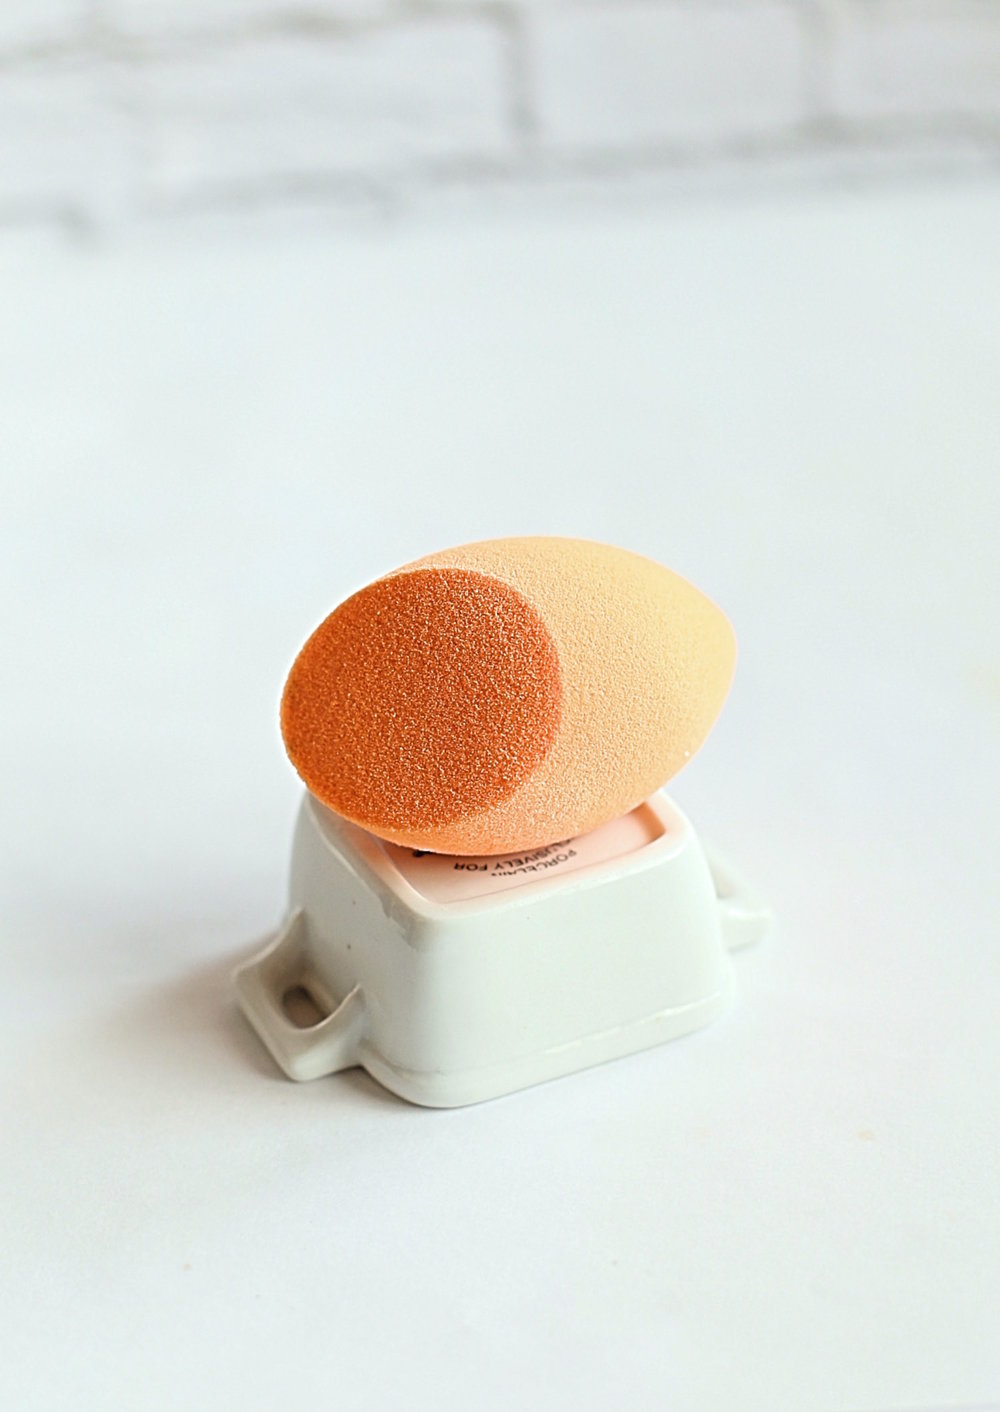 My Favorite Drugstore Makeup Products - Real Techniques Makeup Sponge | TrufflesandTrends.com